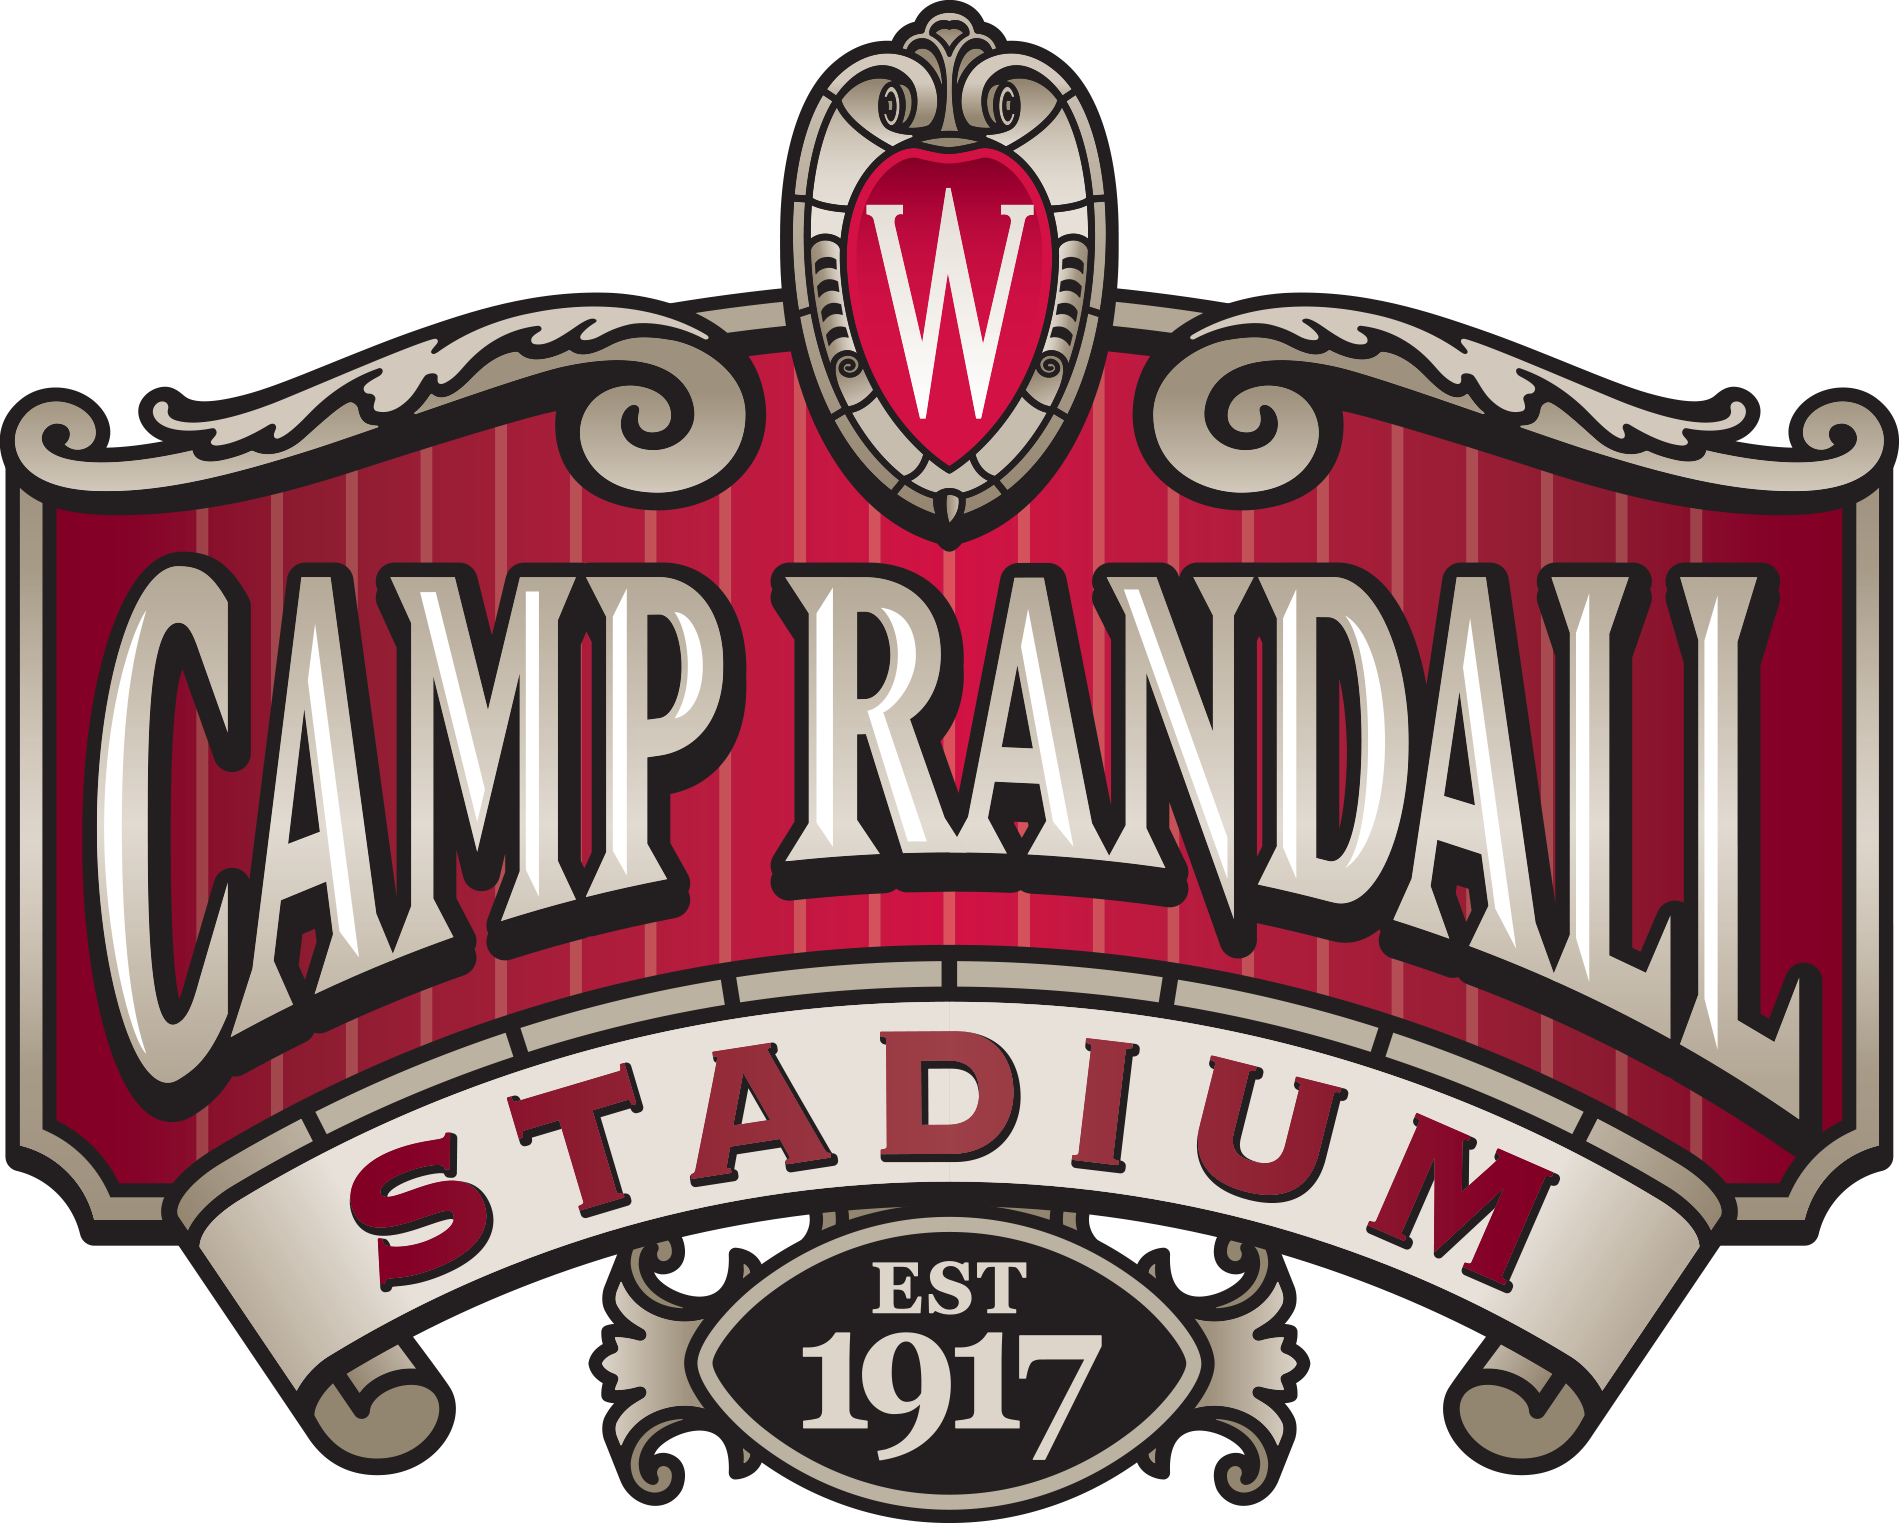 Camp Randall Suites